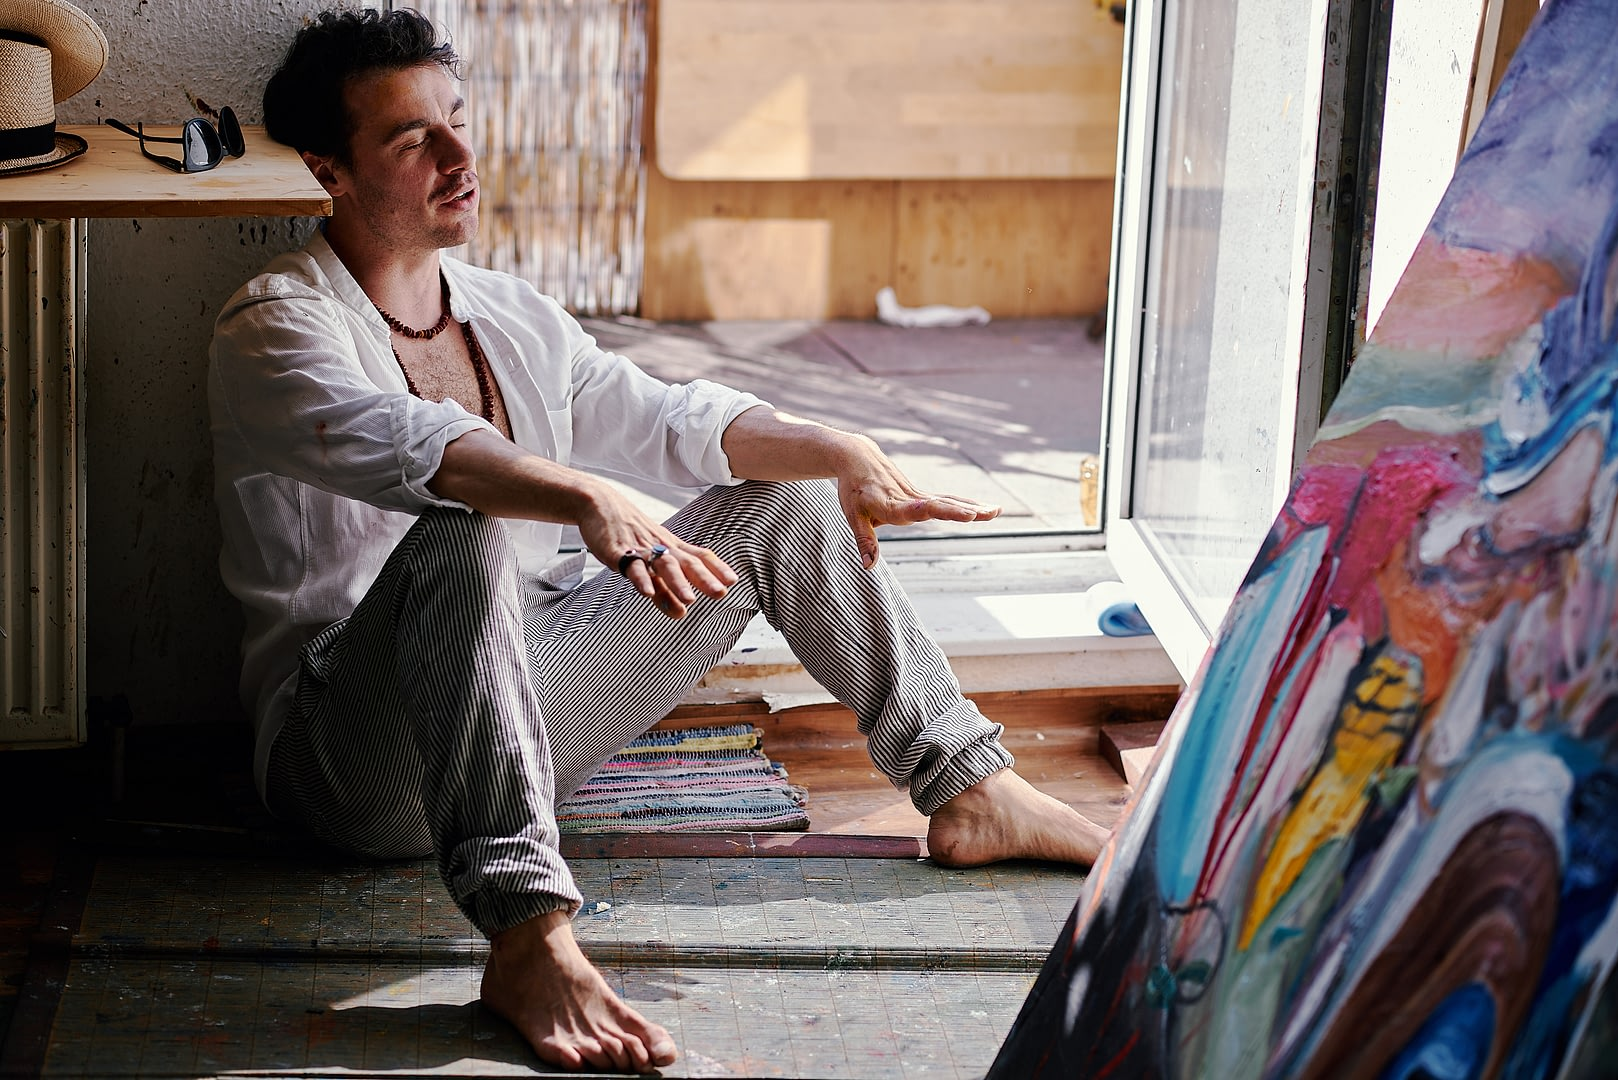 Artist Portrait of the Painter Stefano Bosis for 10011mag 5